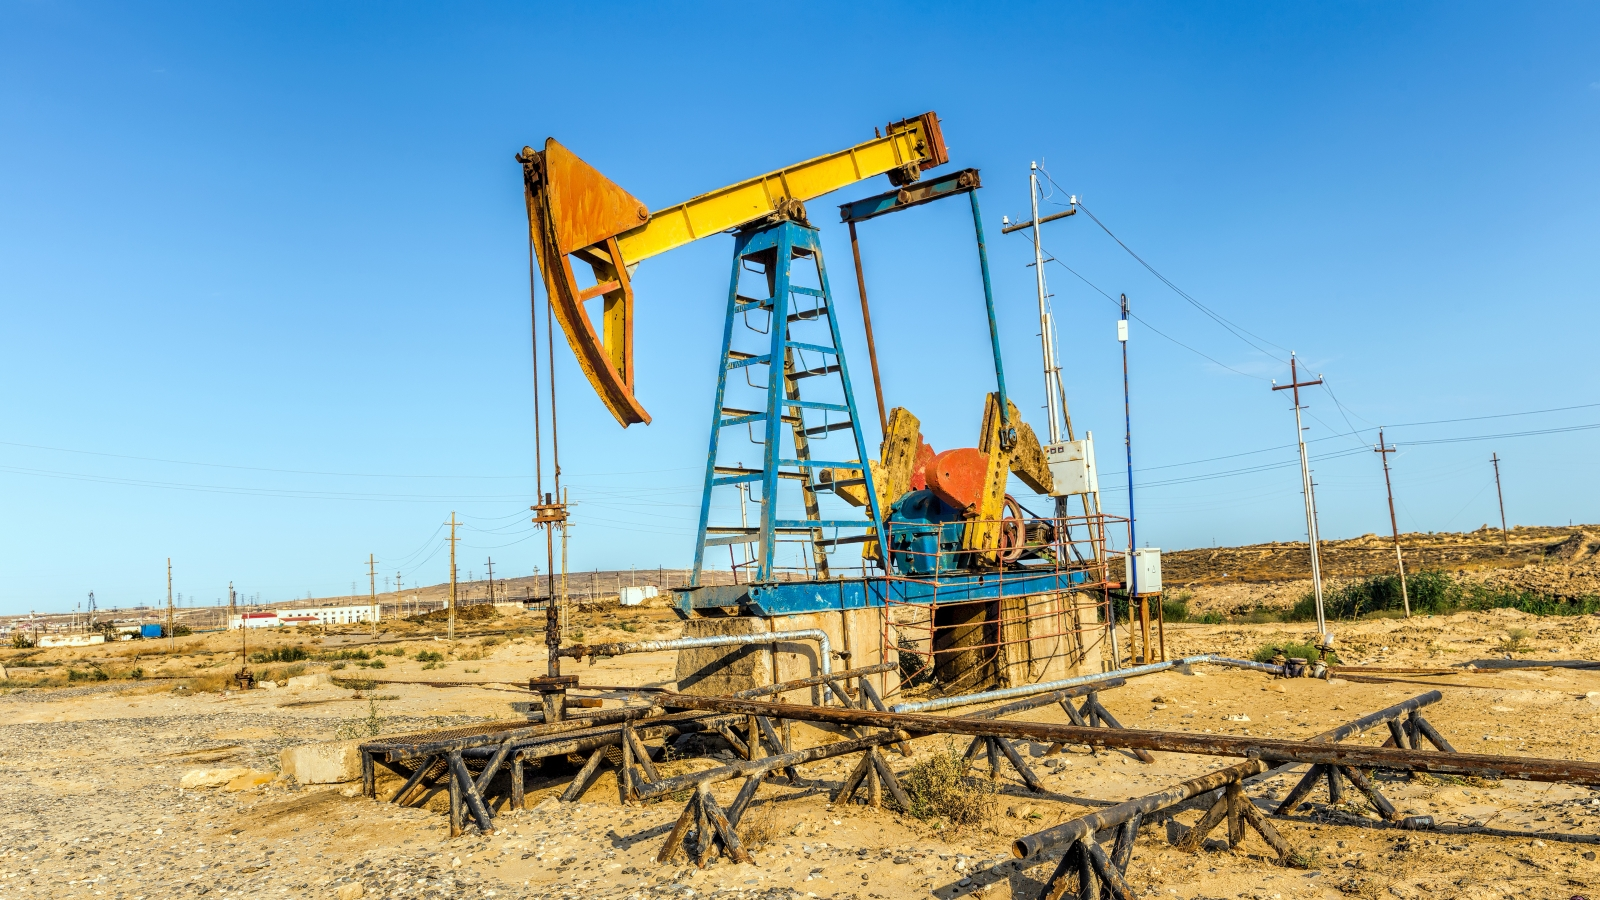 Oil pumps in Azerbaijan. Shutterstock photo